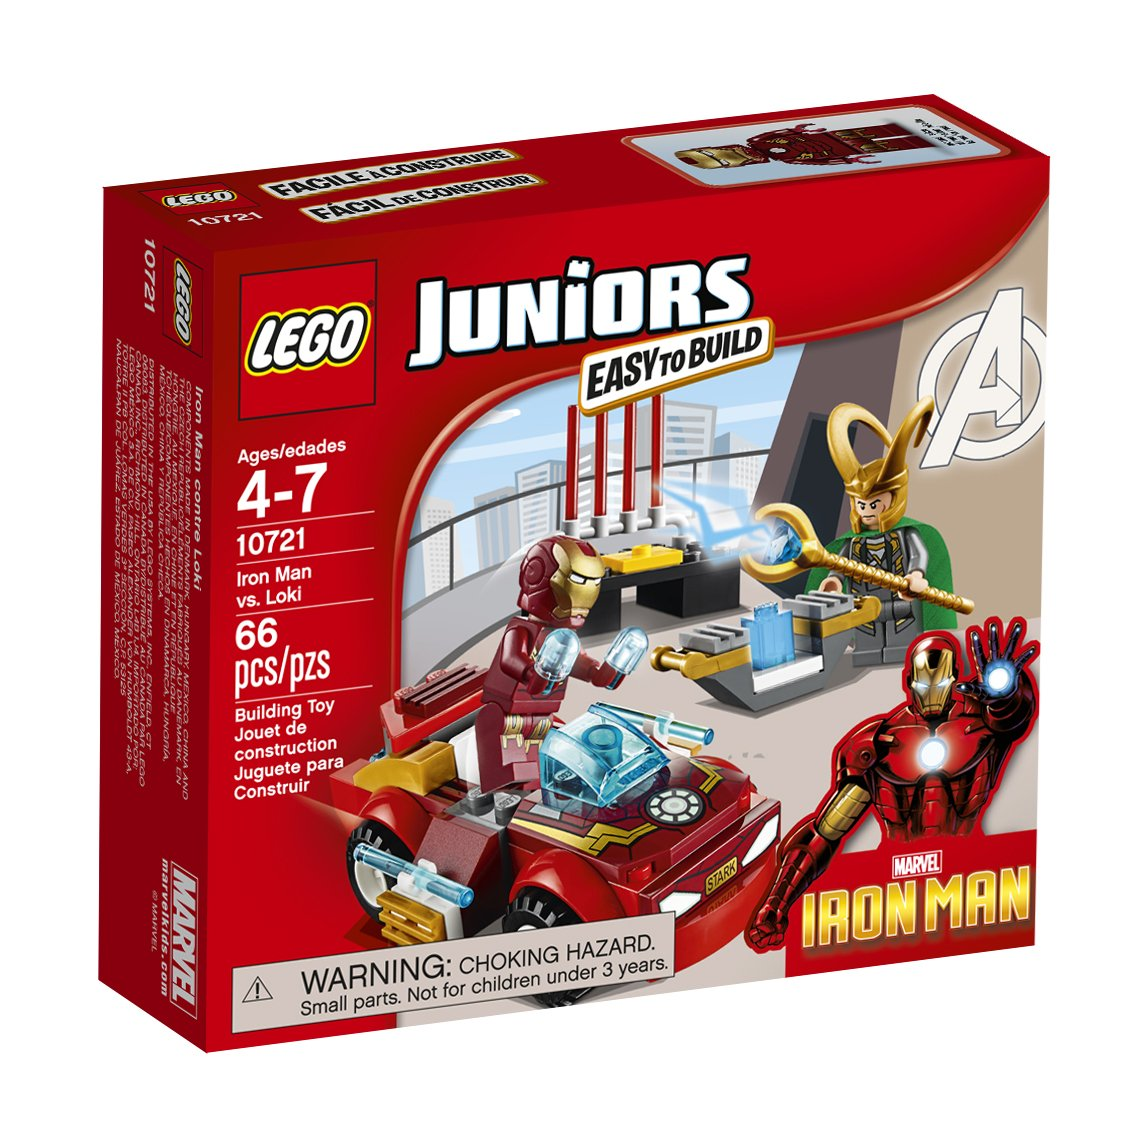 LEGO Juniors Iron Man vs. Loki